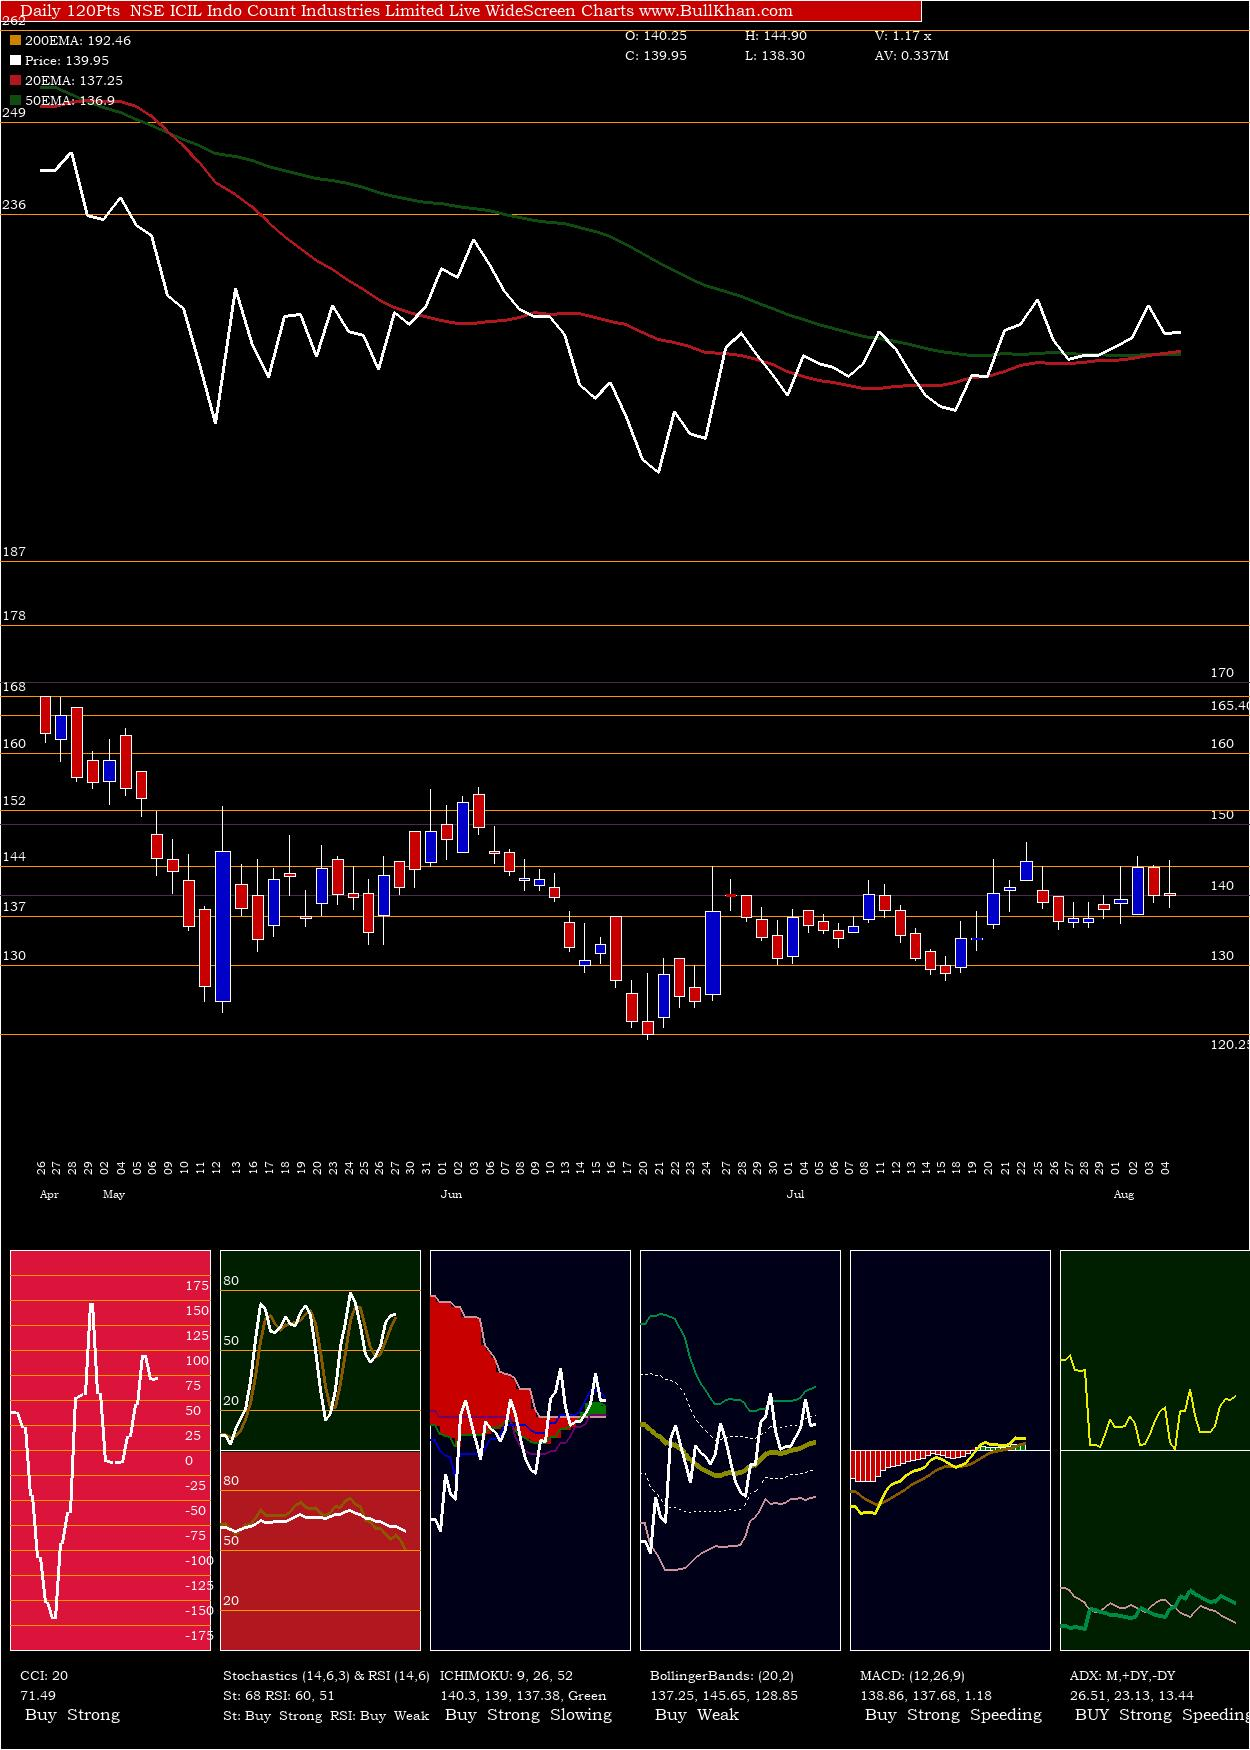 Indo Count Industries Limited charts and indicators